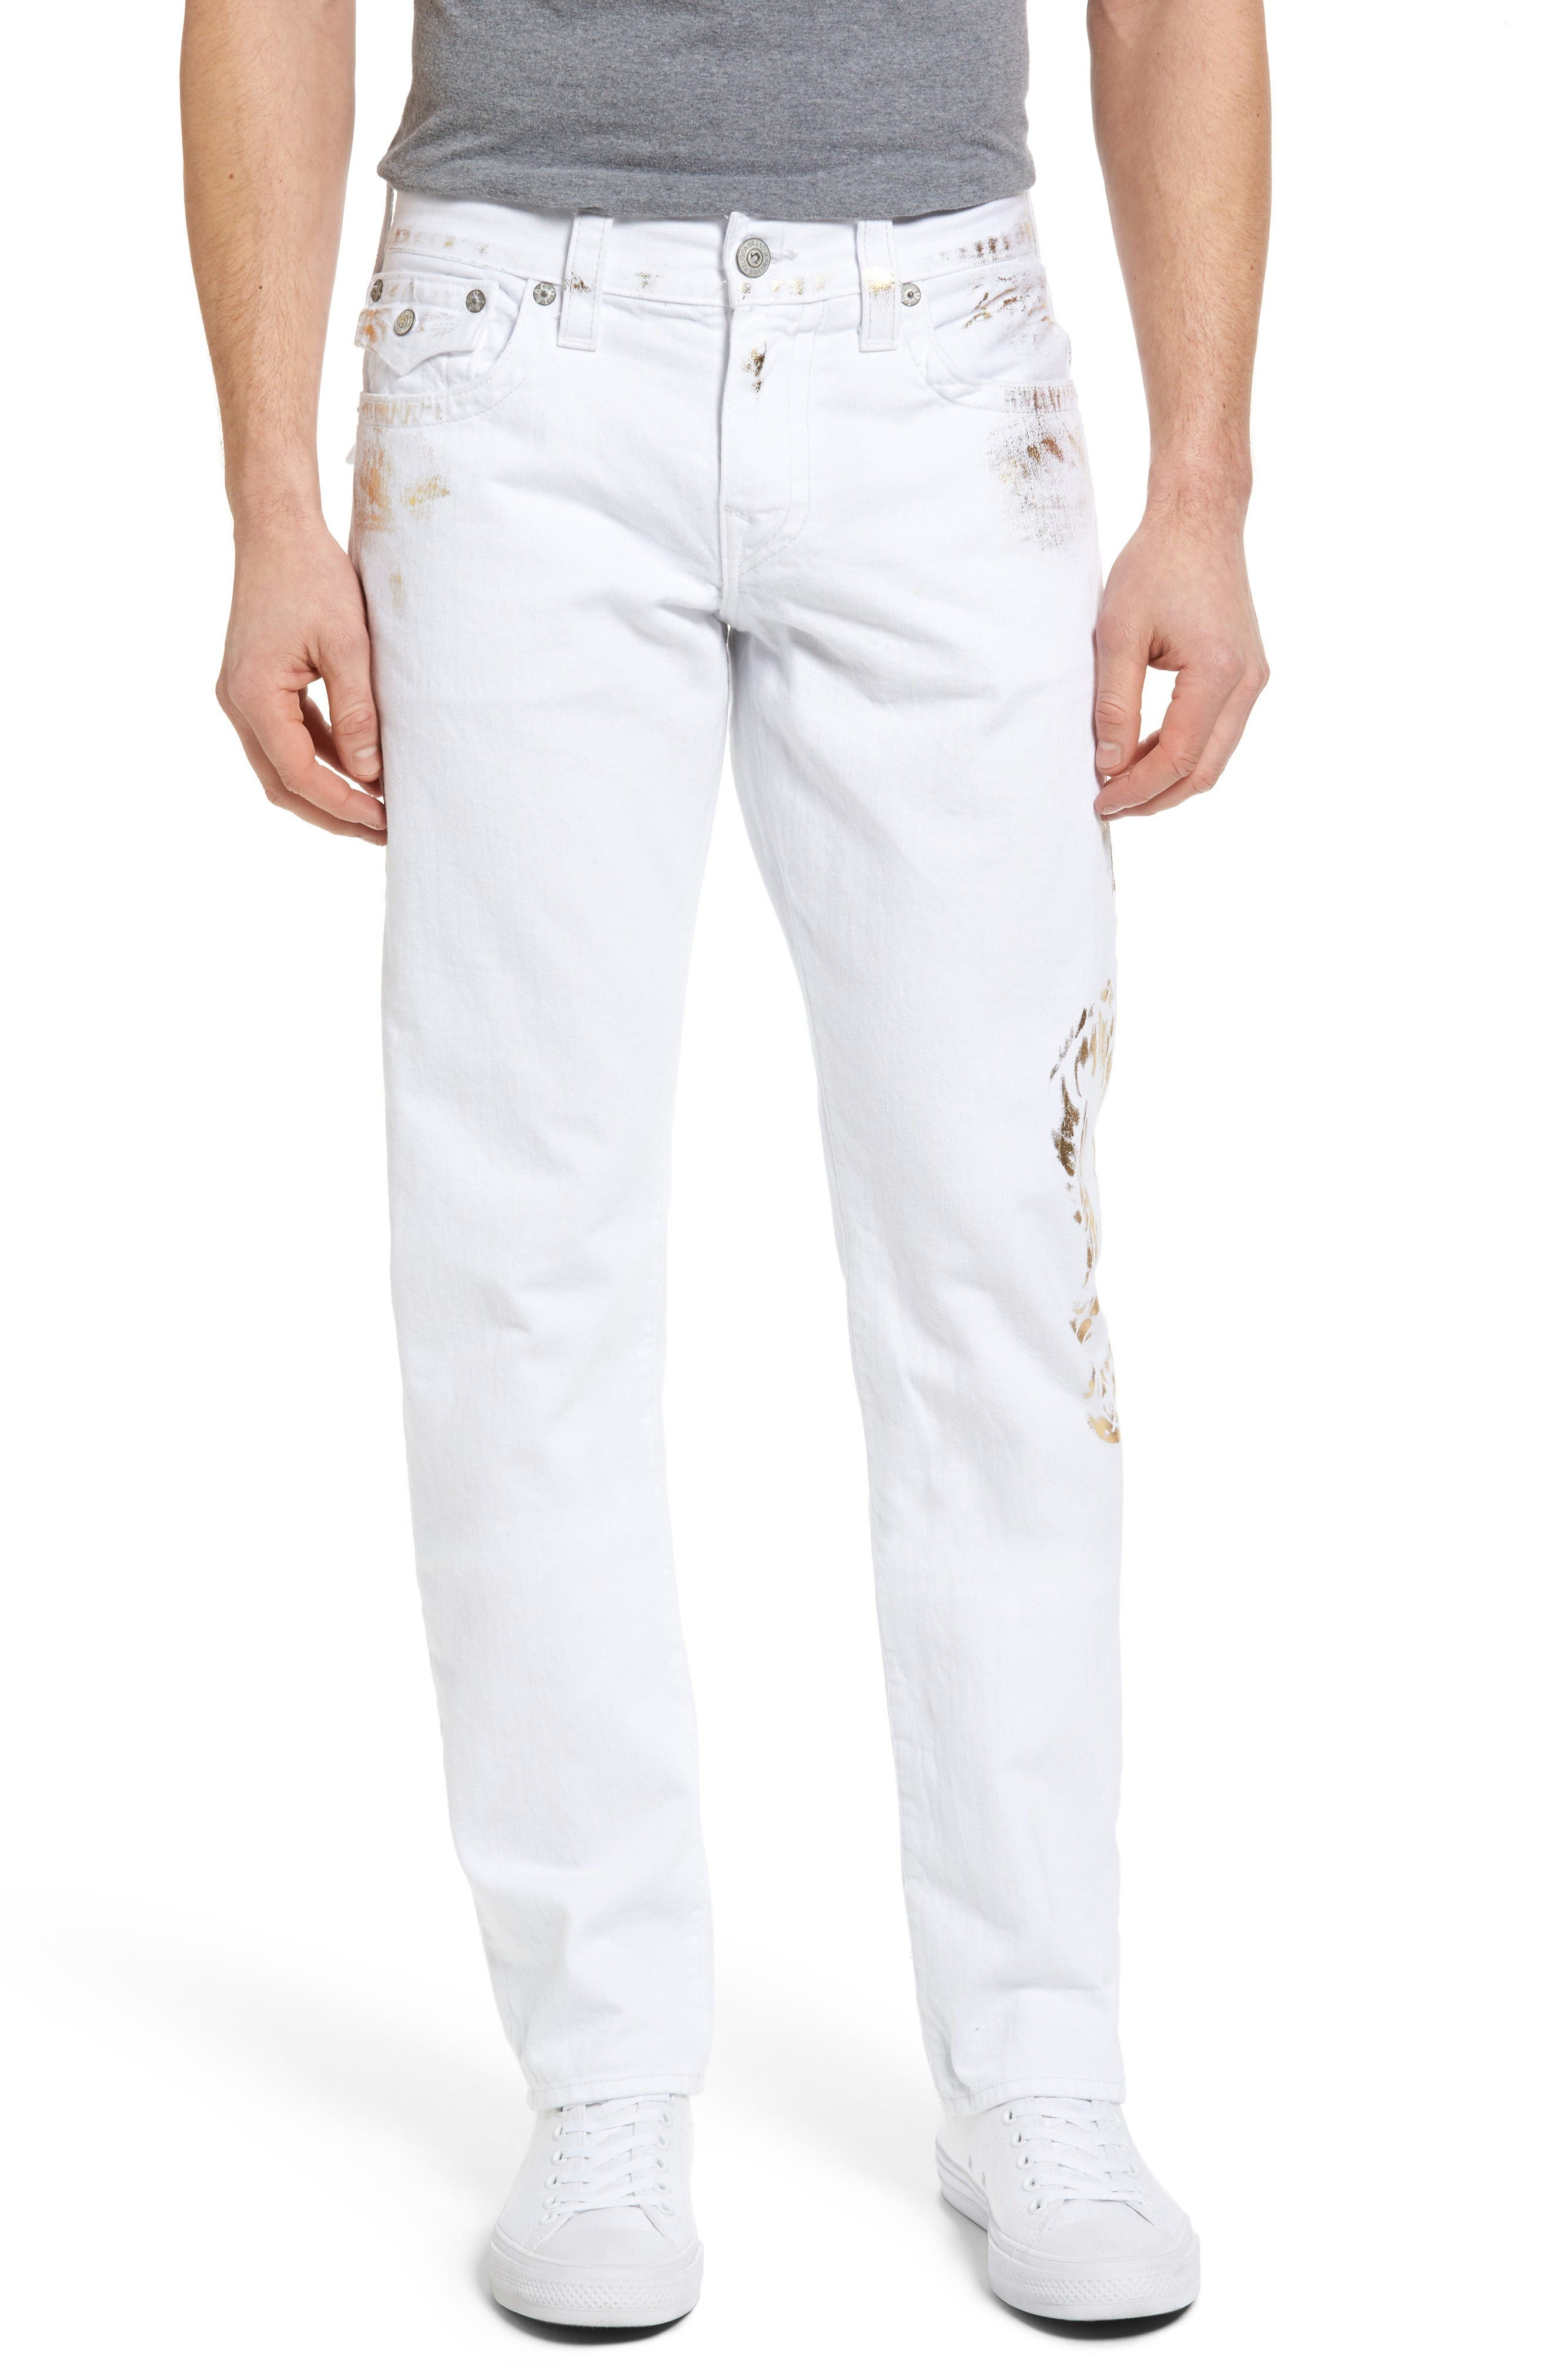 True Religion Brand Jeans Ricky Relaxed Fit Jeans (Optic Gold)